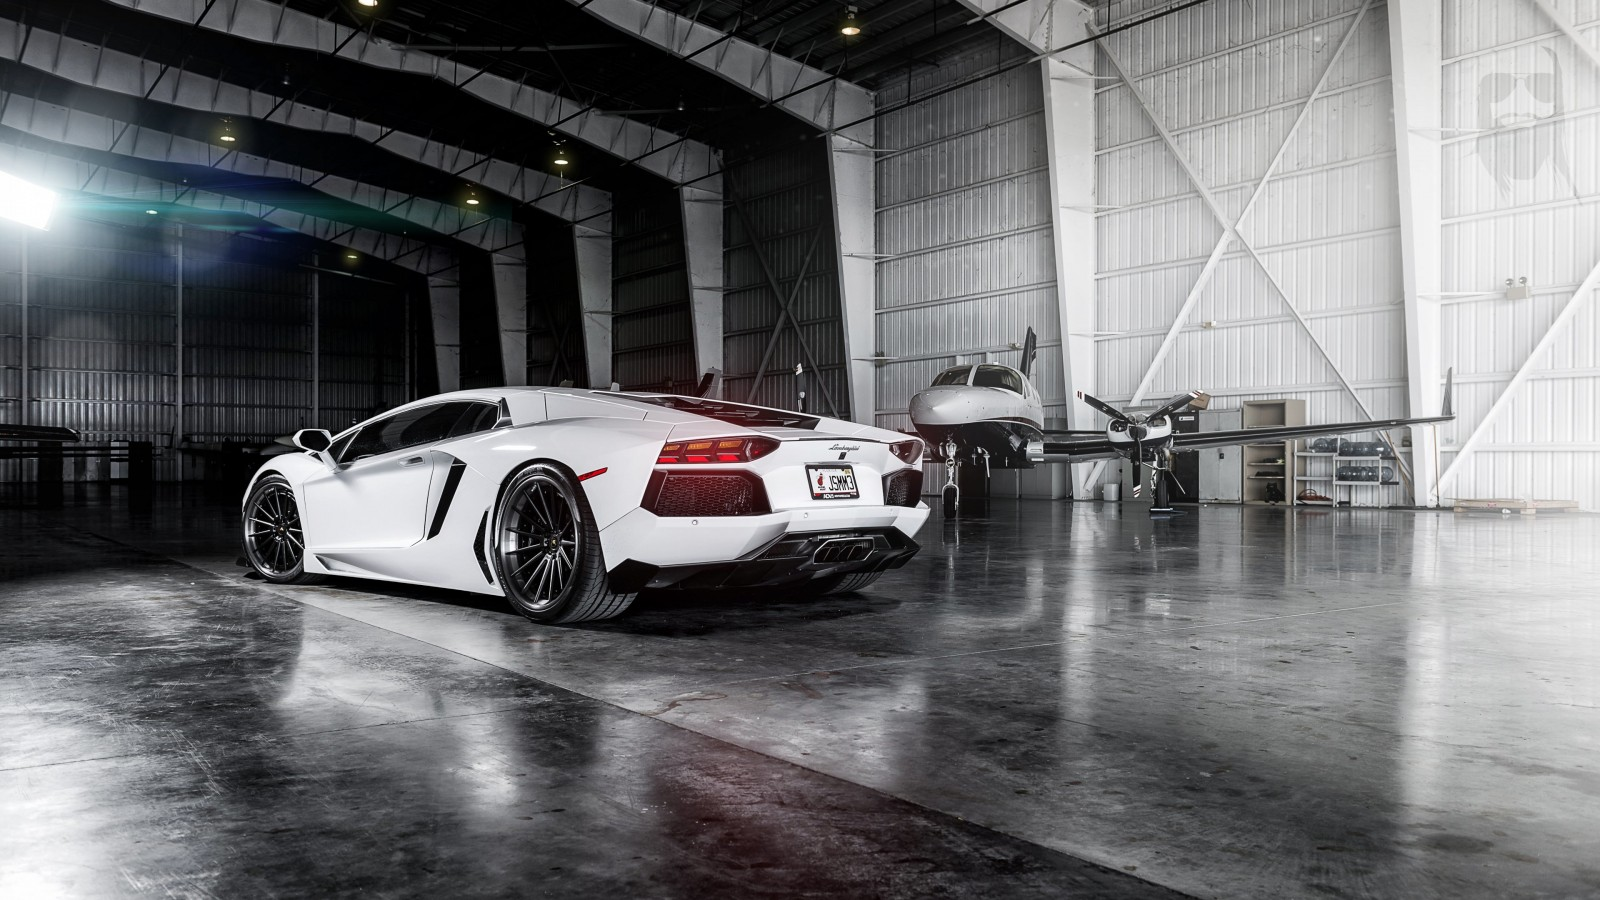 White Lamborghini Aventador Wallpaper for Desktop 1600x900